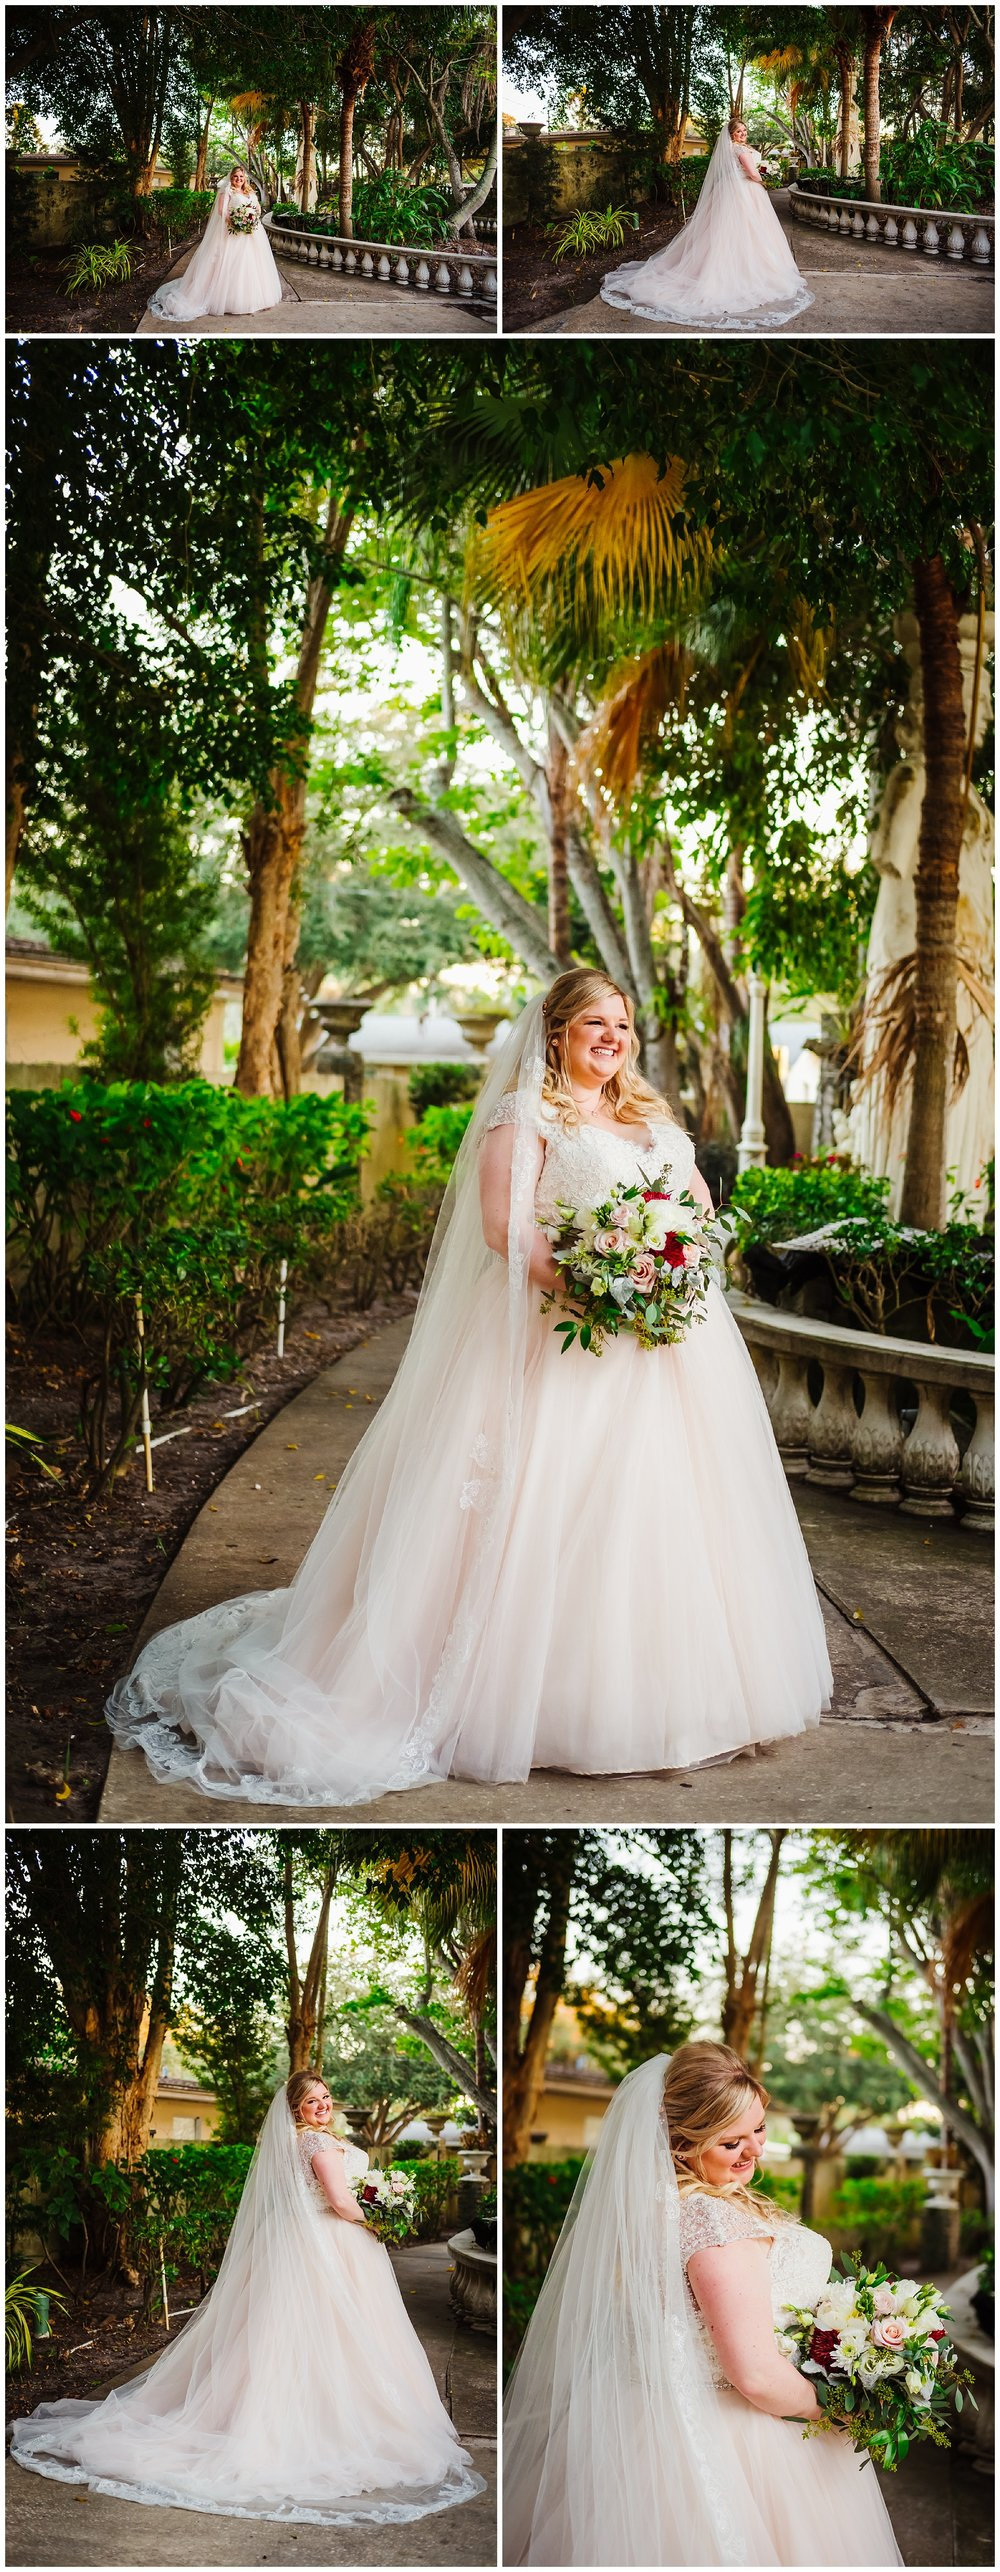 tampa-wedding-photographer-kapok-special-events-center-hayley-paige-gress-blush-gold-disney_0050.jpg